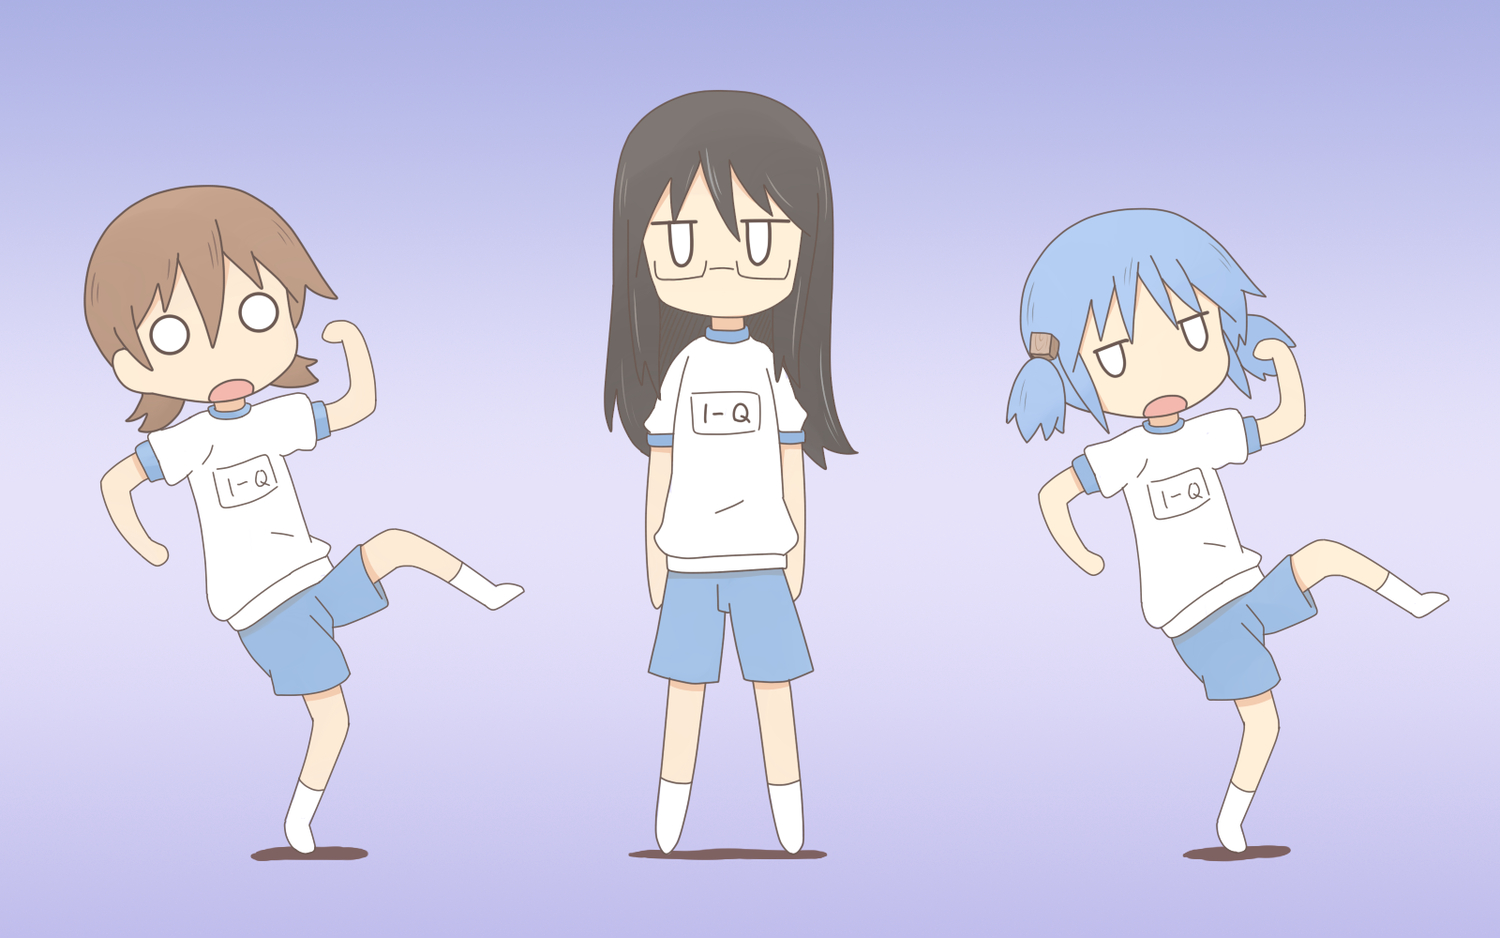 3girls aioi_yuuko blue_hair brown_hair chibi glasses kill_me_baby minakami_mai naganohara_mio nichijou parody twintails